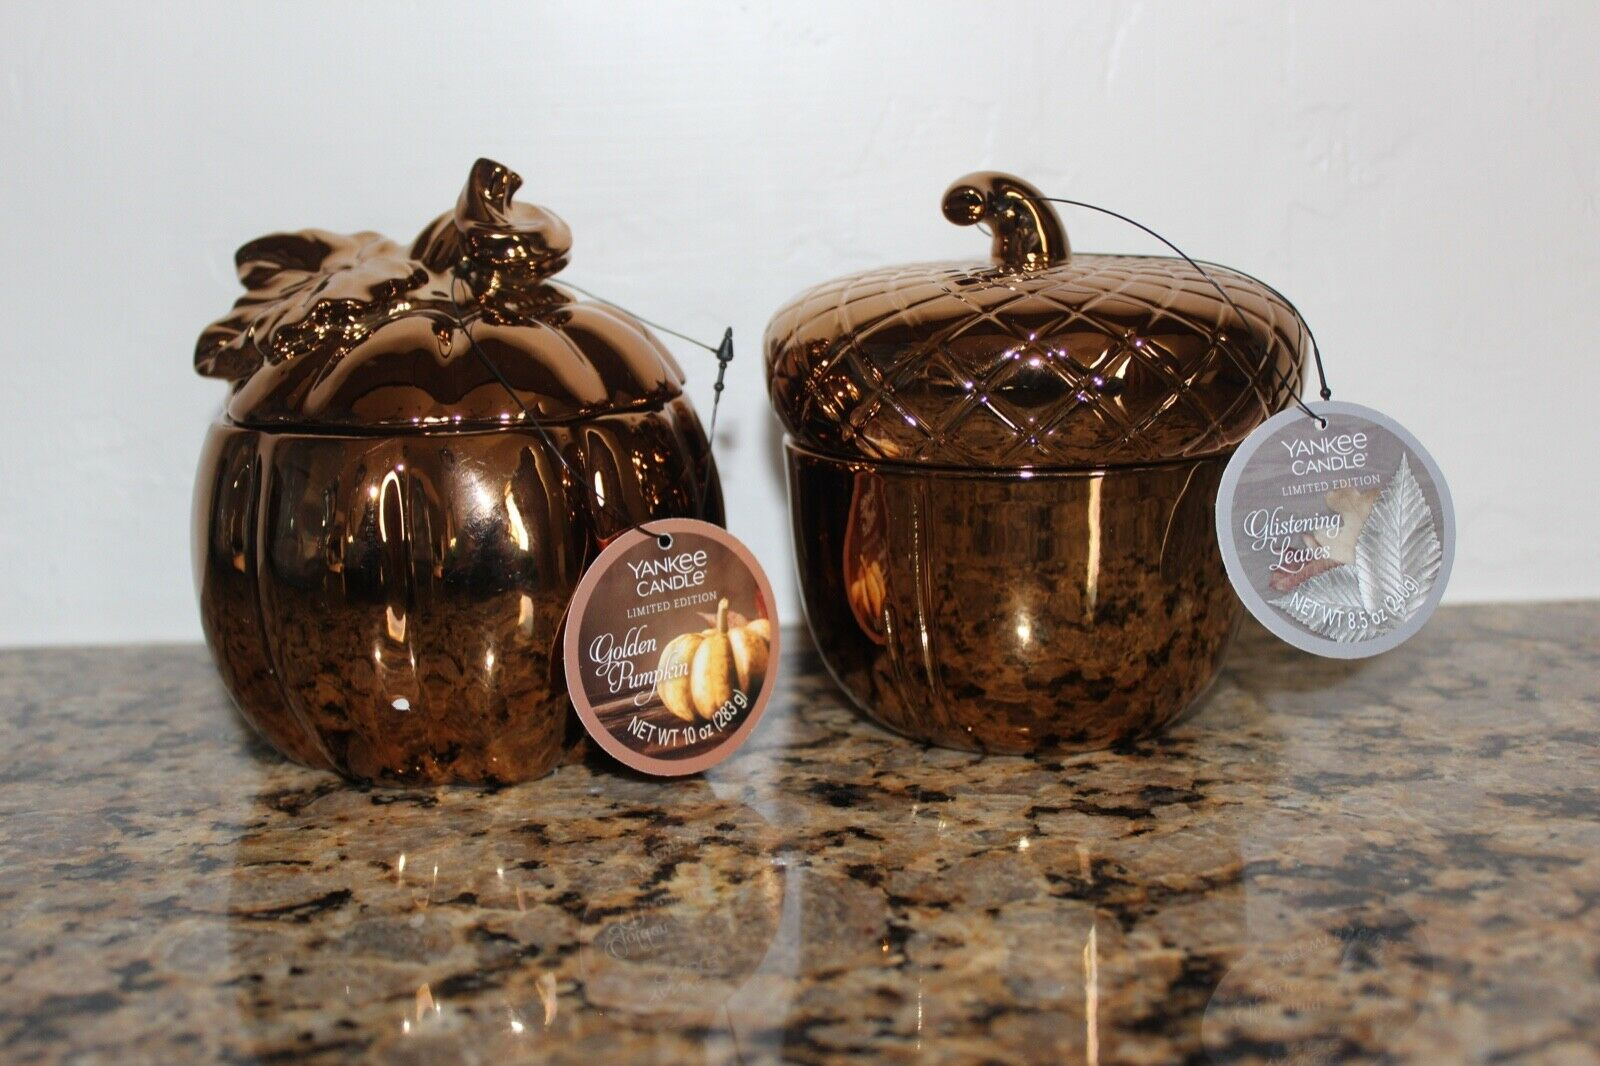 Yankee Candle golden Pumpkin & golden Acorn SetAutumn FallUSA Exclusive